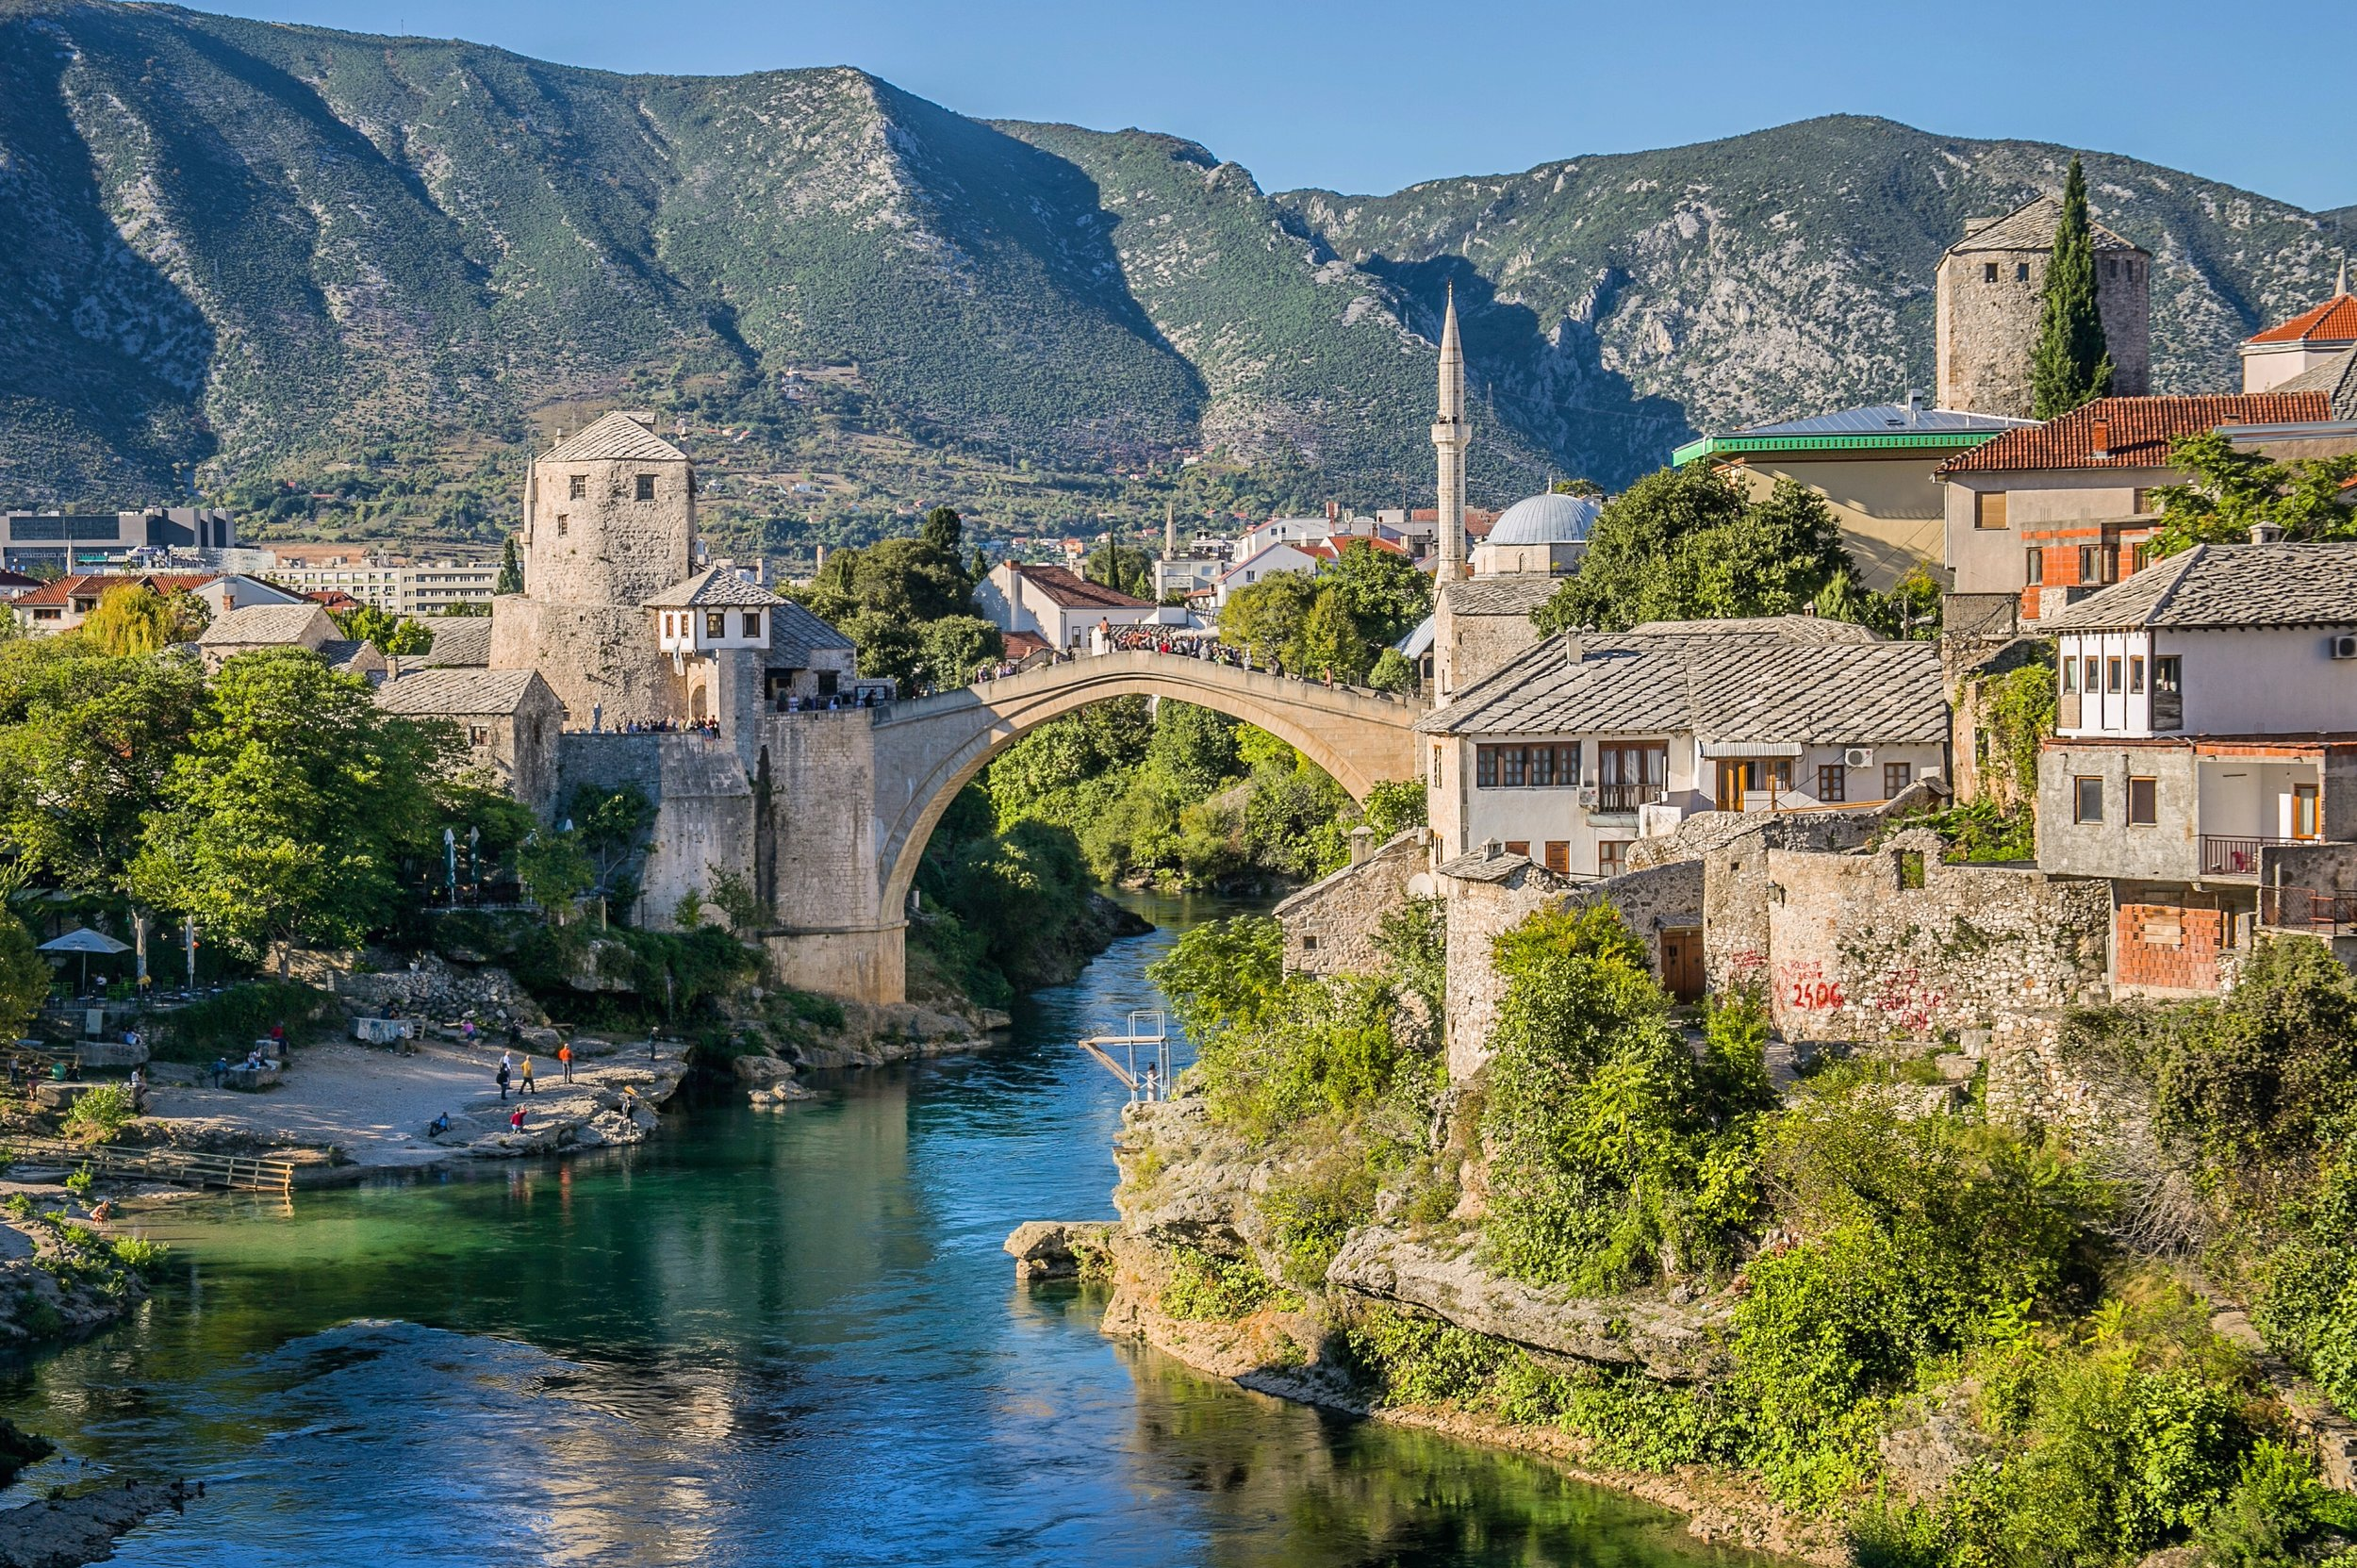 The Old Bridge - Mostar, Bosnia